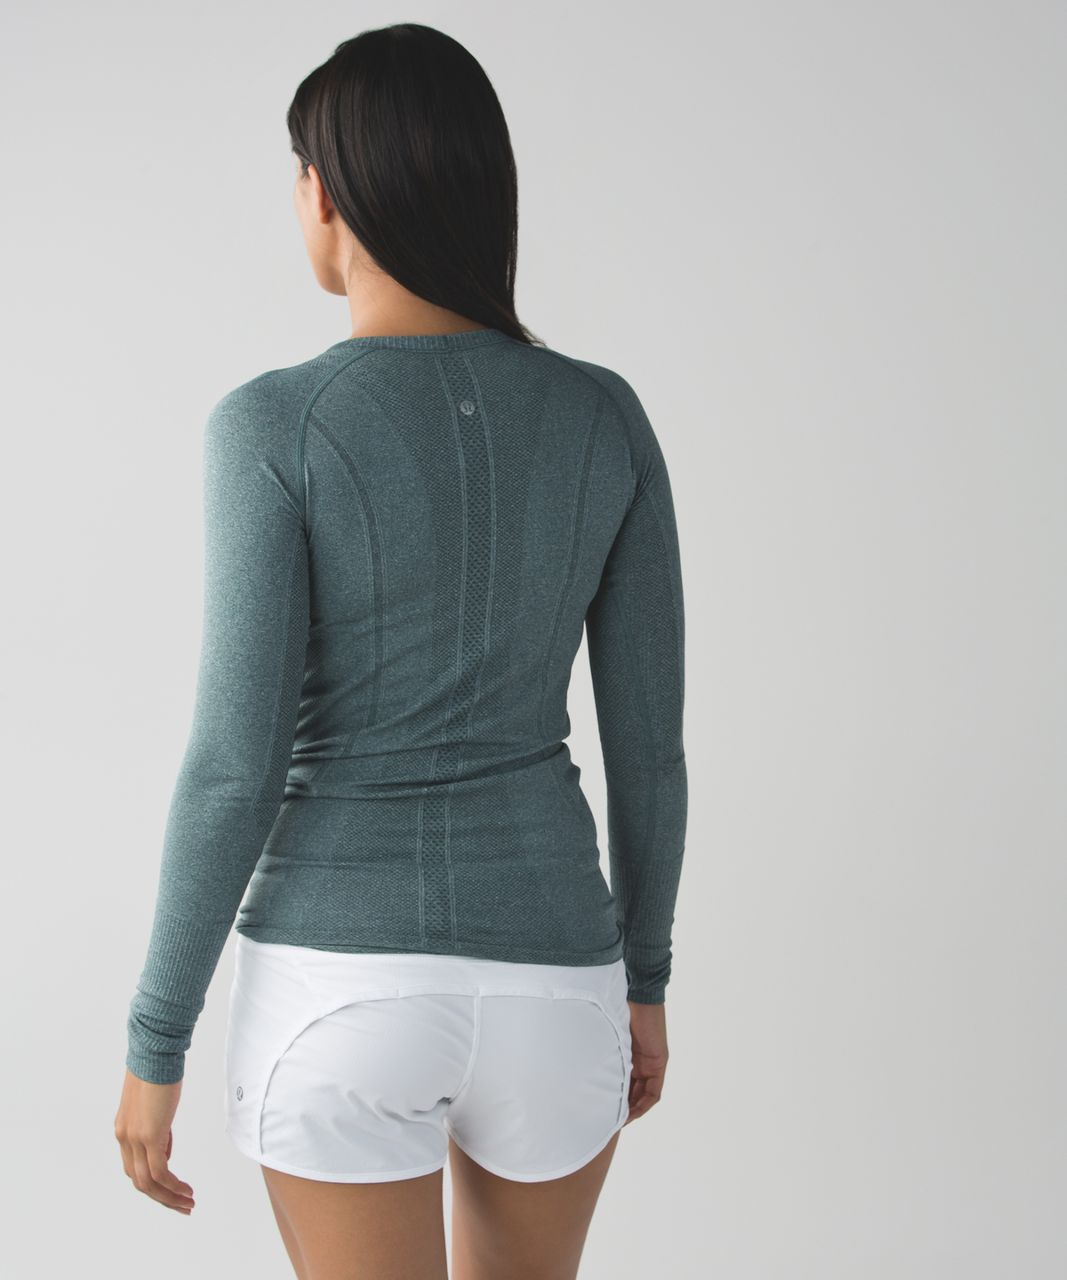 Lululemon Swiftly Tech Long Sleeve Crew - Heathered Dark Fuel